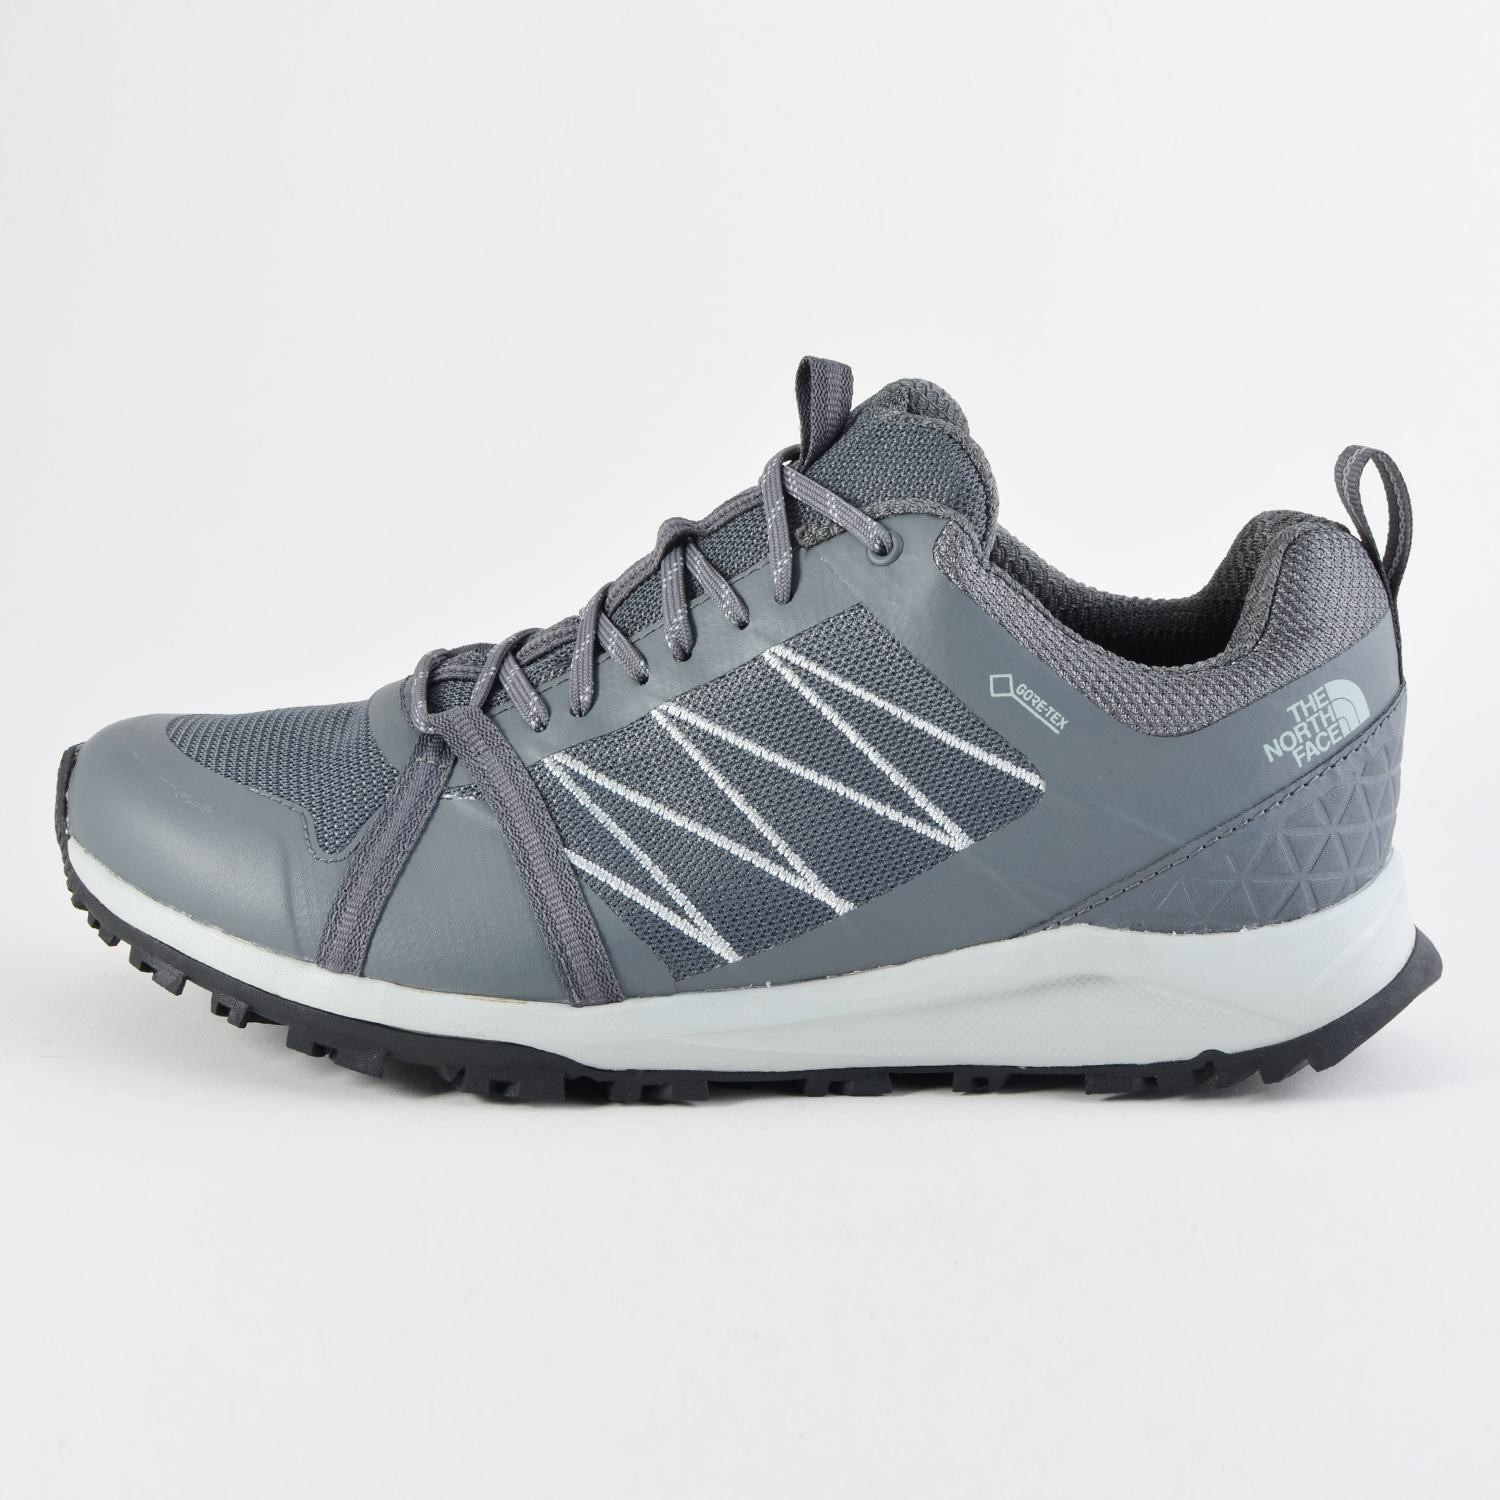 THE NORTH FACE M LW FP II GTX (9000036693_41173) EXEM SHOES